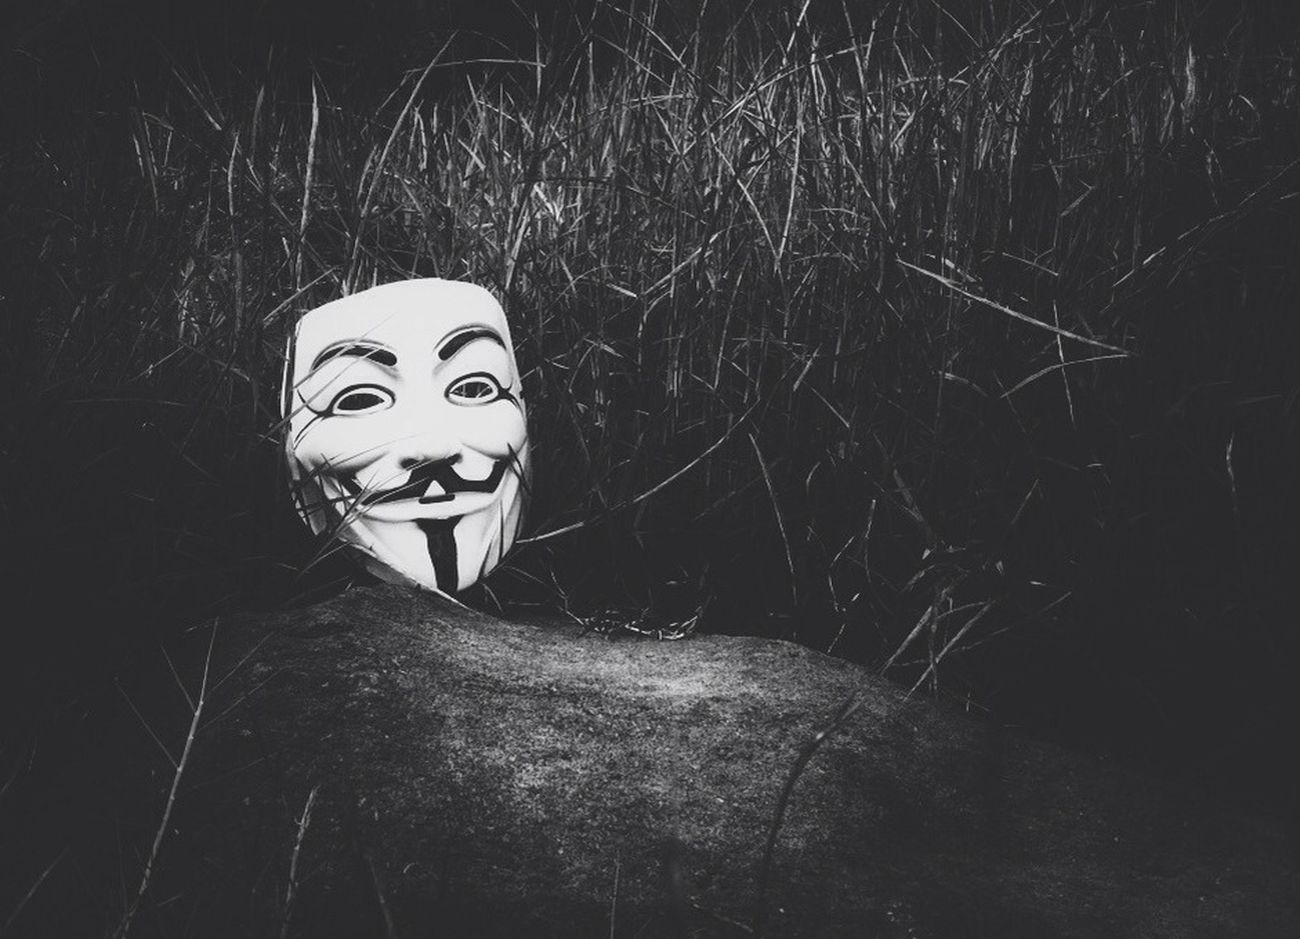 V for Vendetta || ori pic by @ulie, edit by me